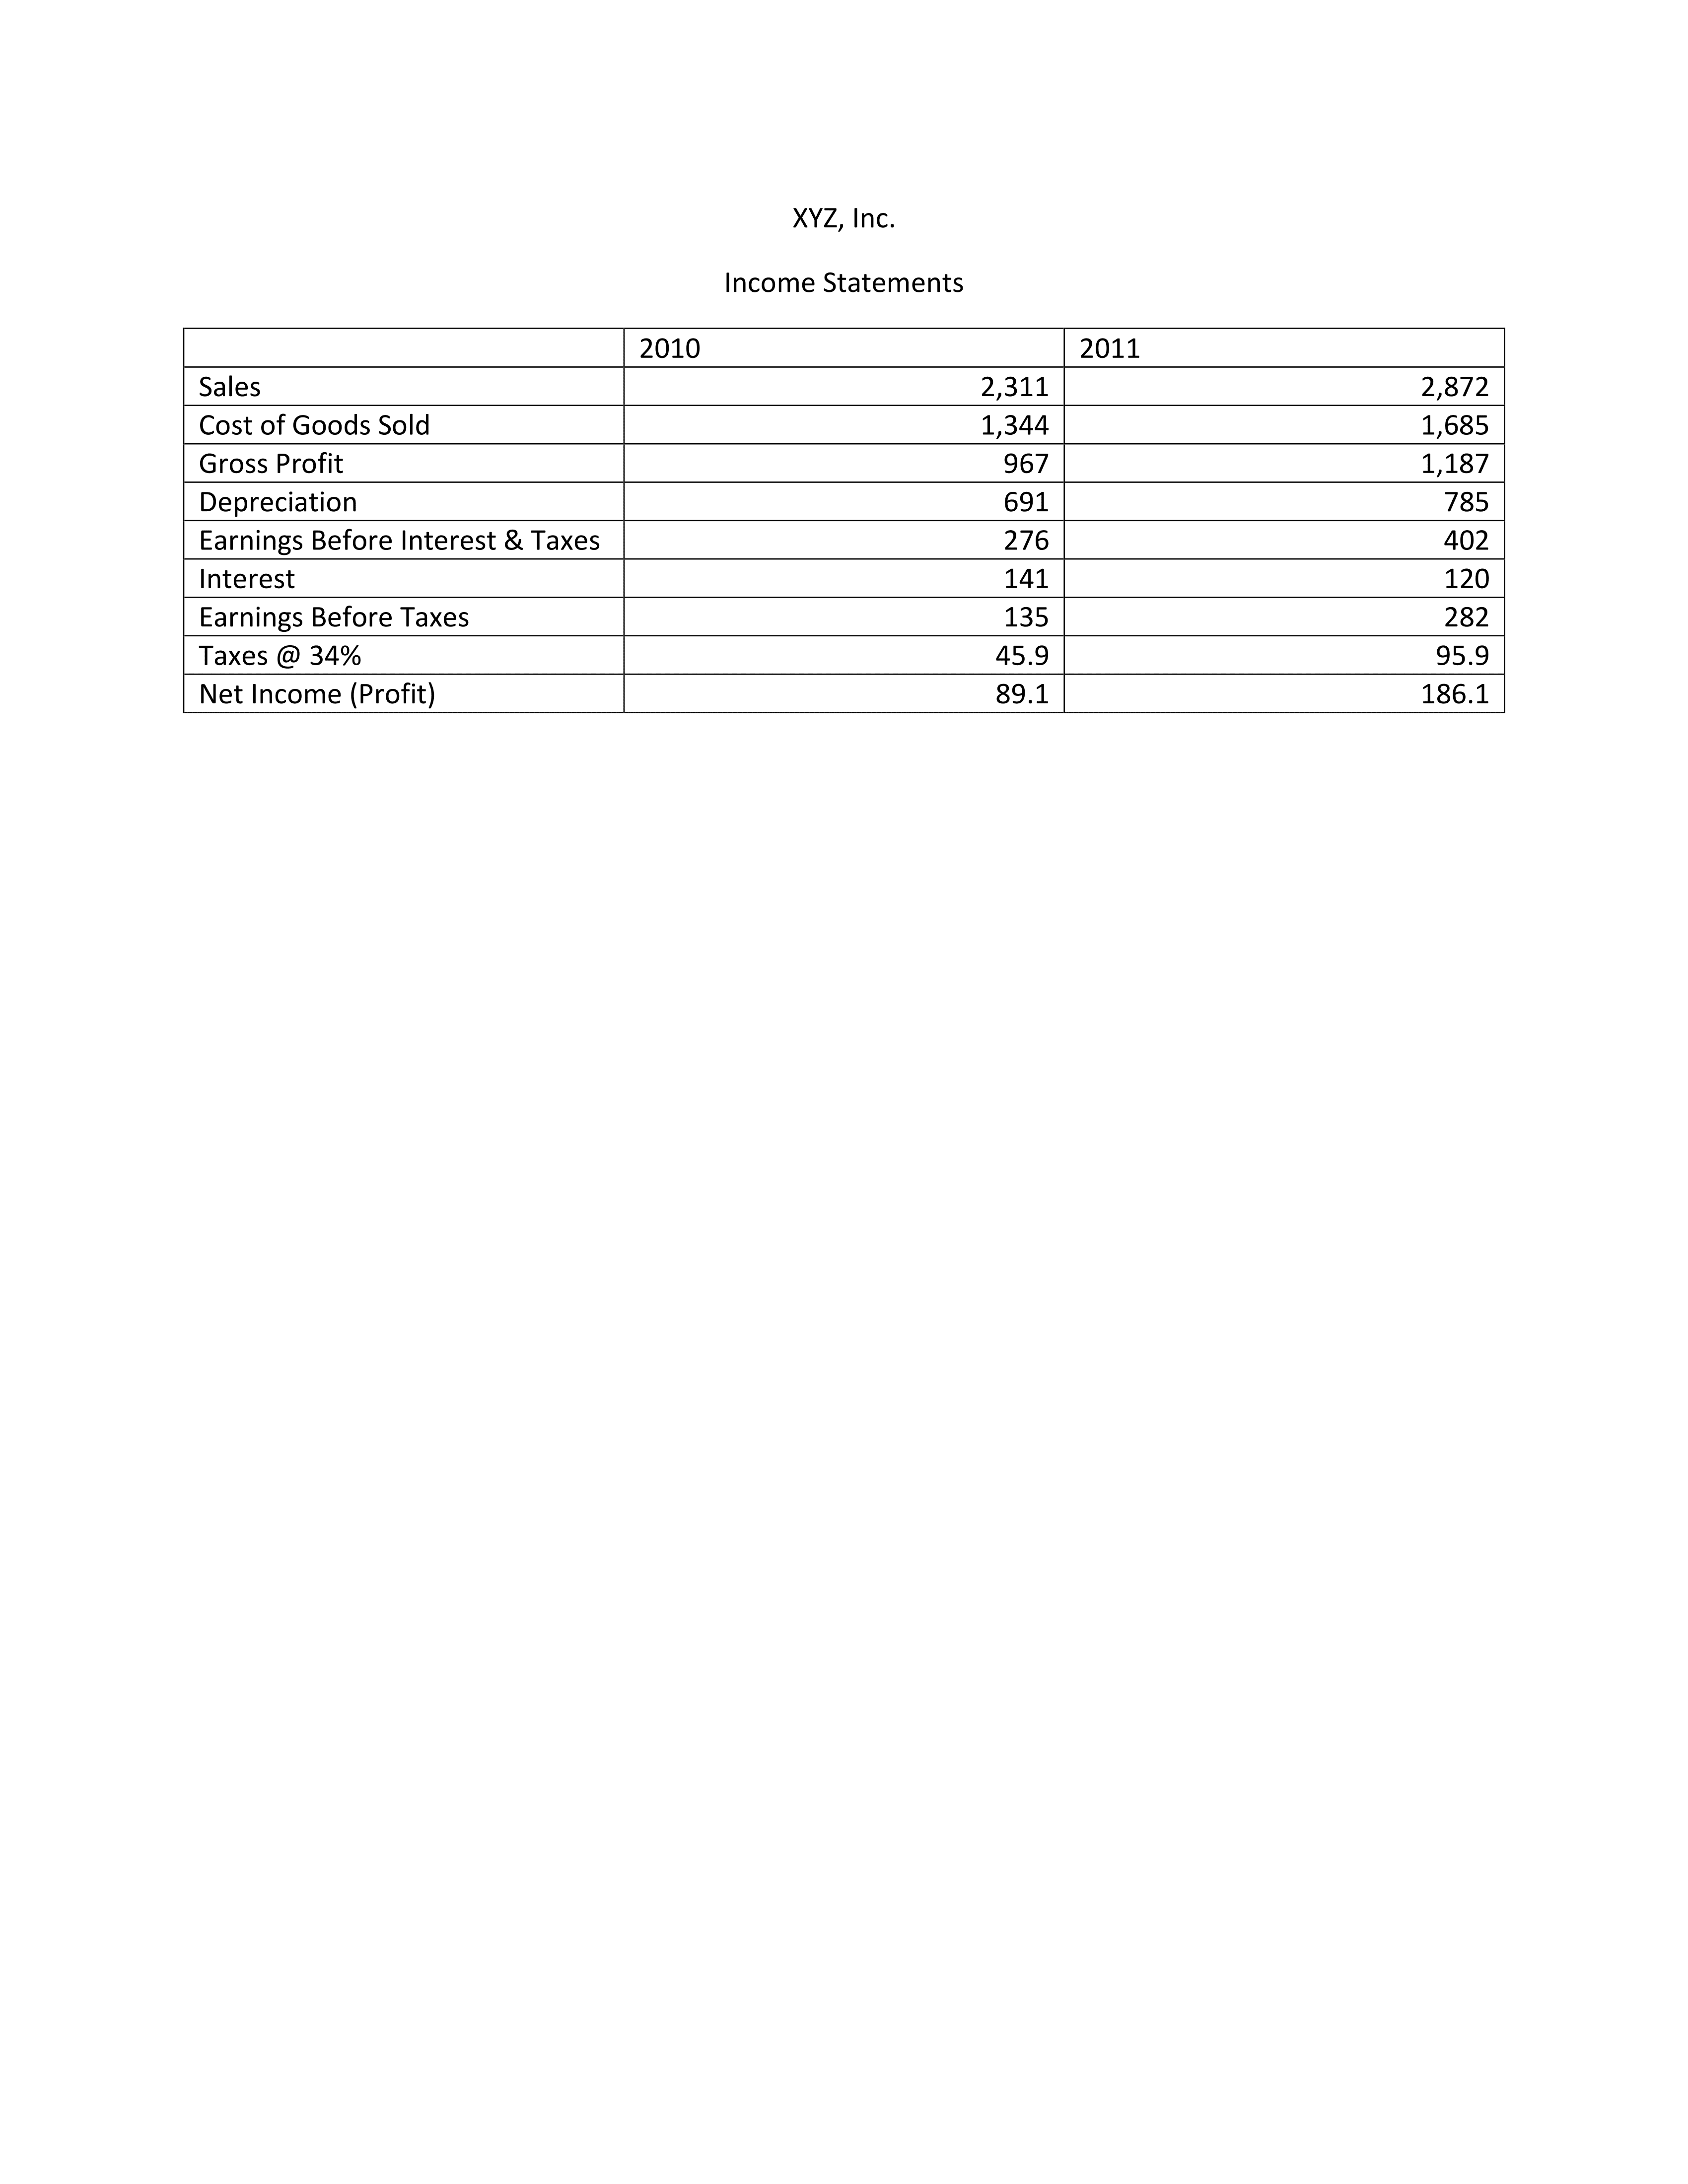 wal mart financial statement analysis